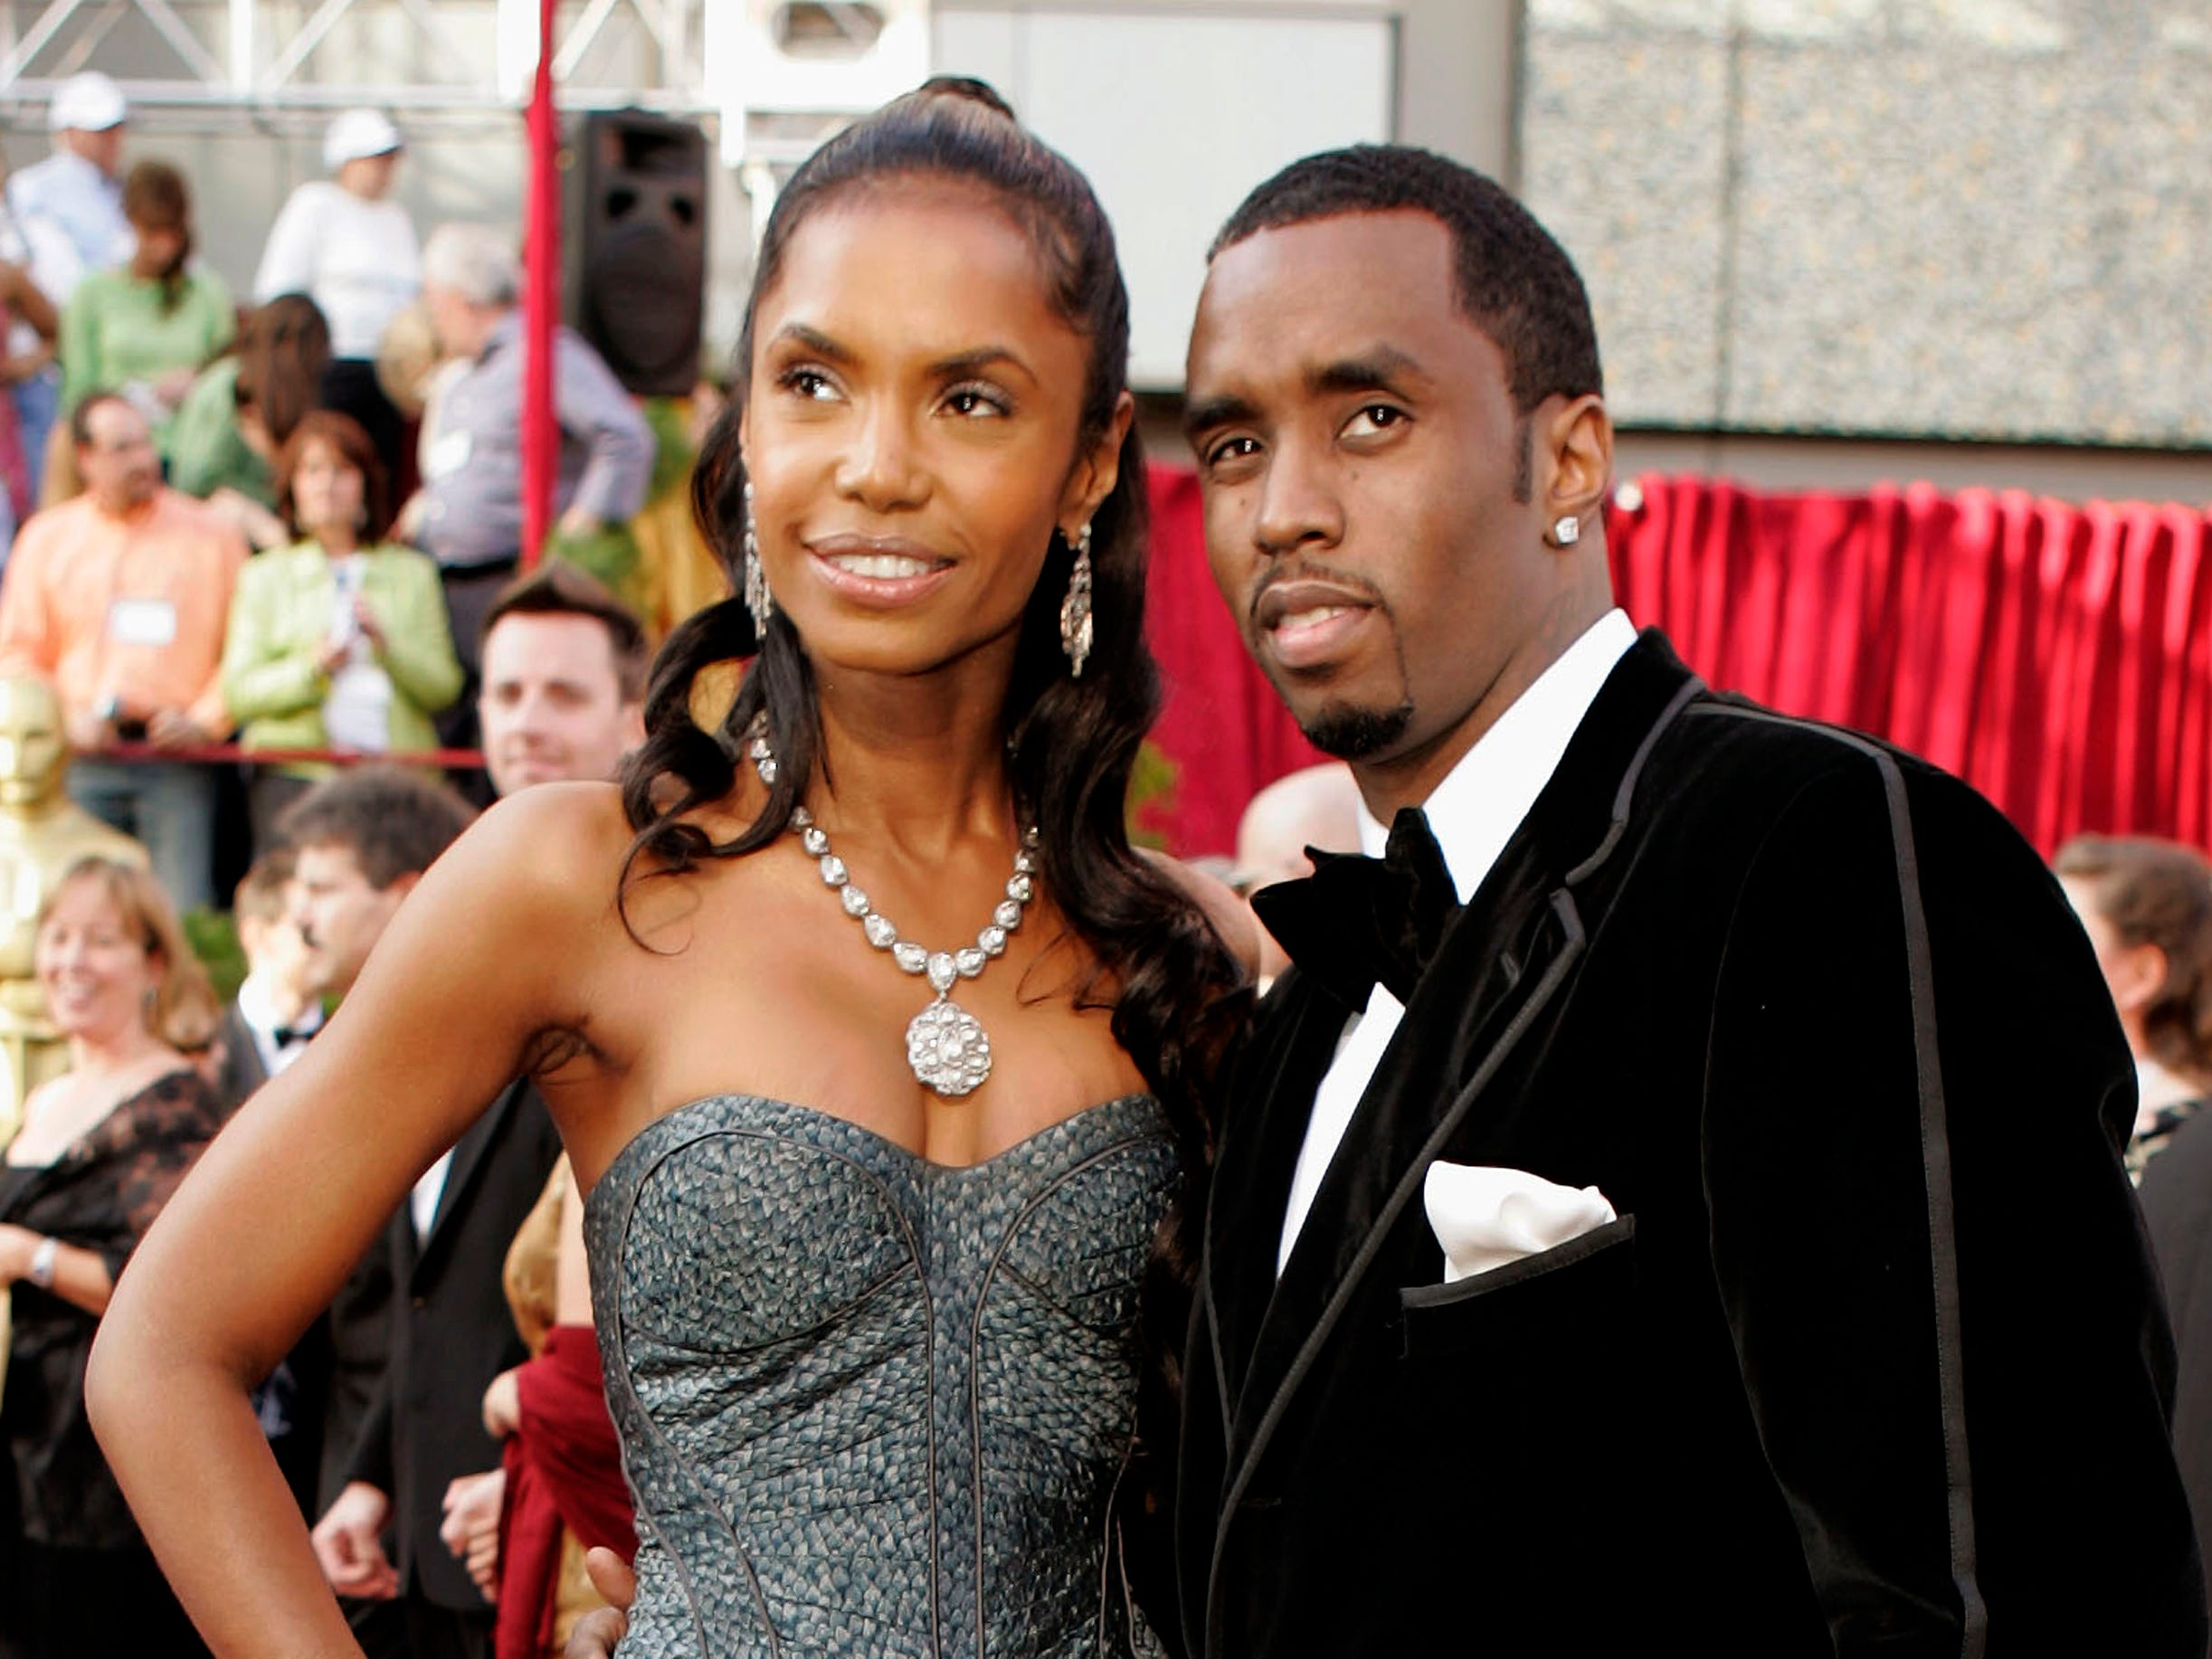 Model Kim Porter's sudden death remains mysterious after autopsy